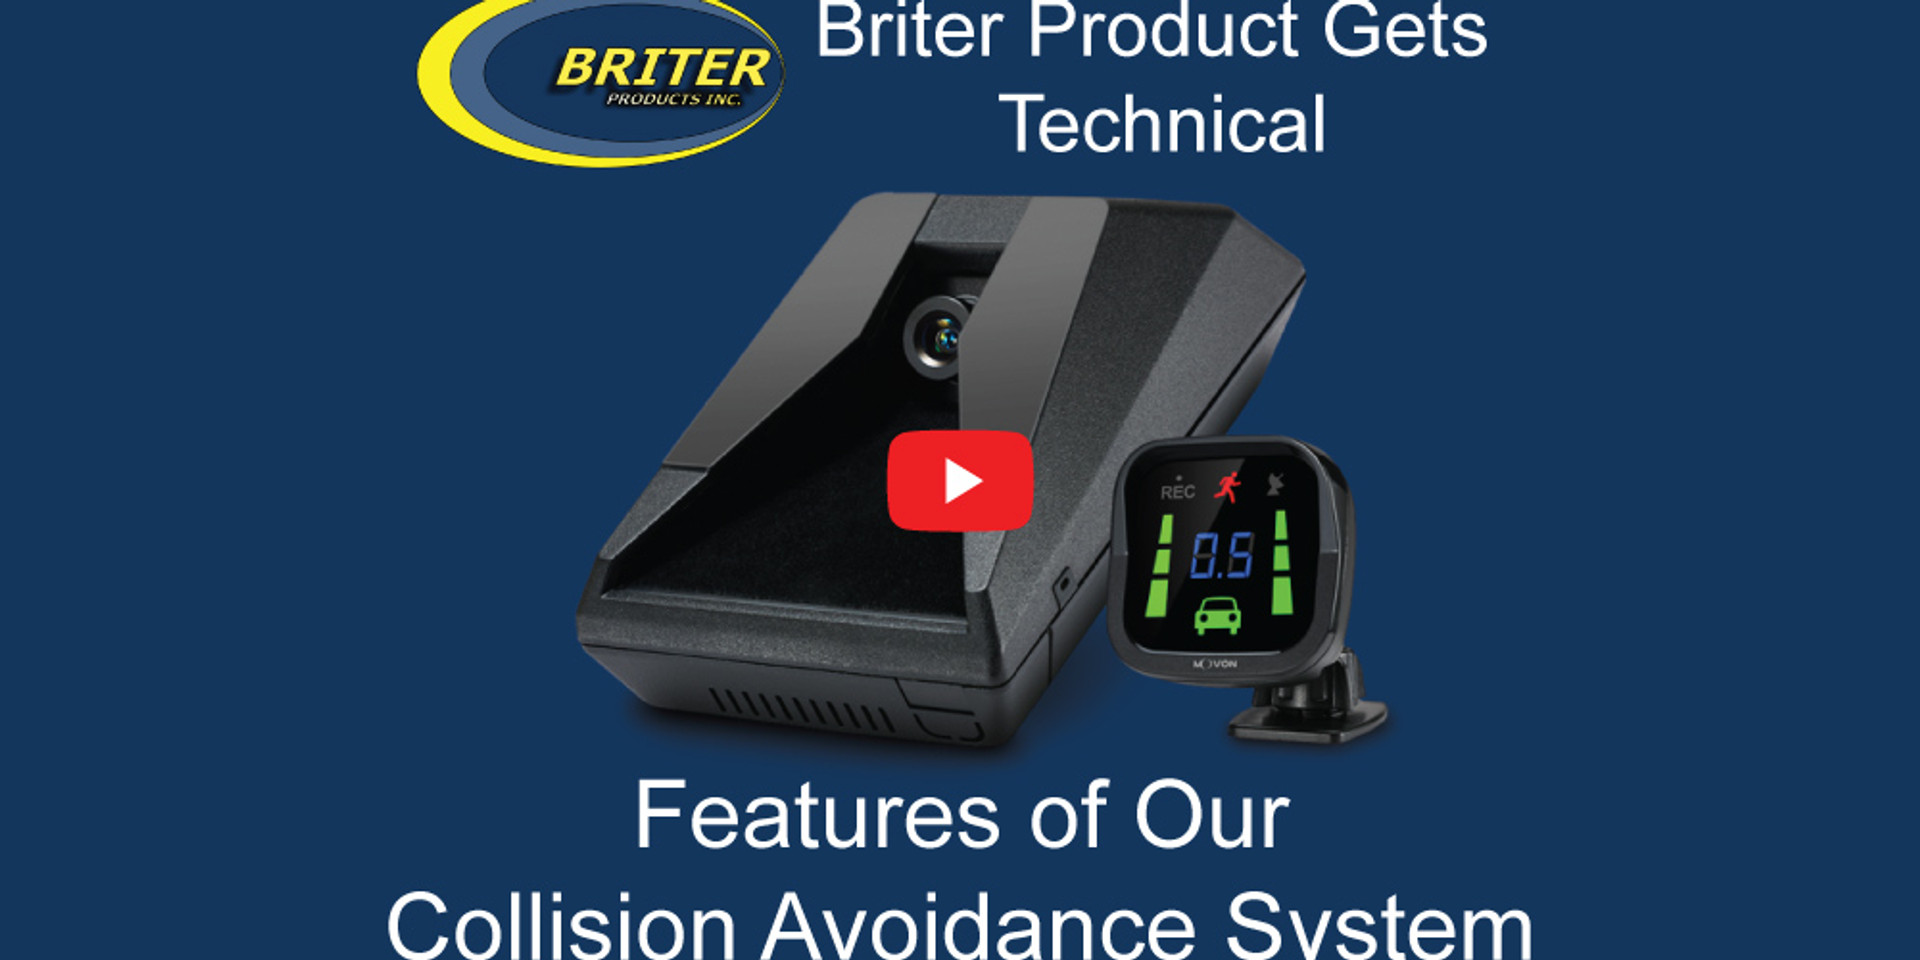 Video: Features of the Collision Avoidance System